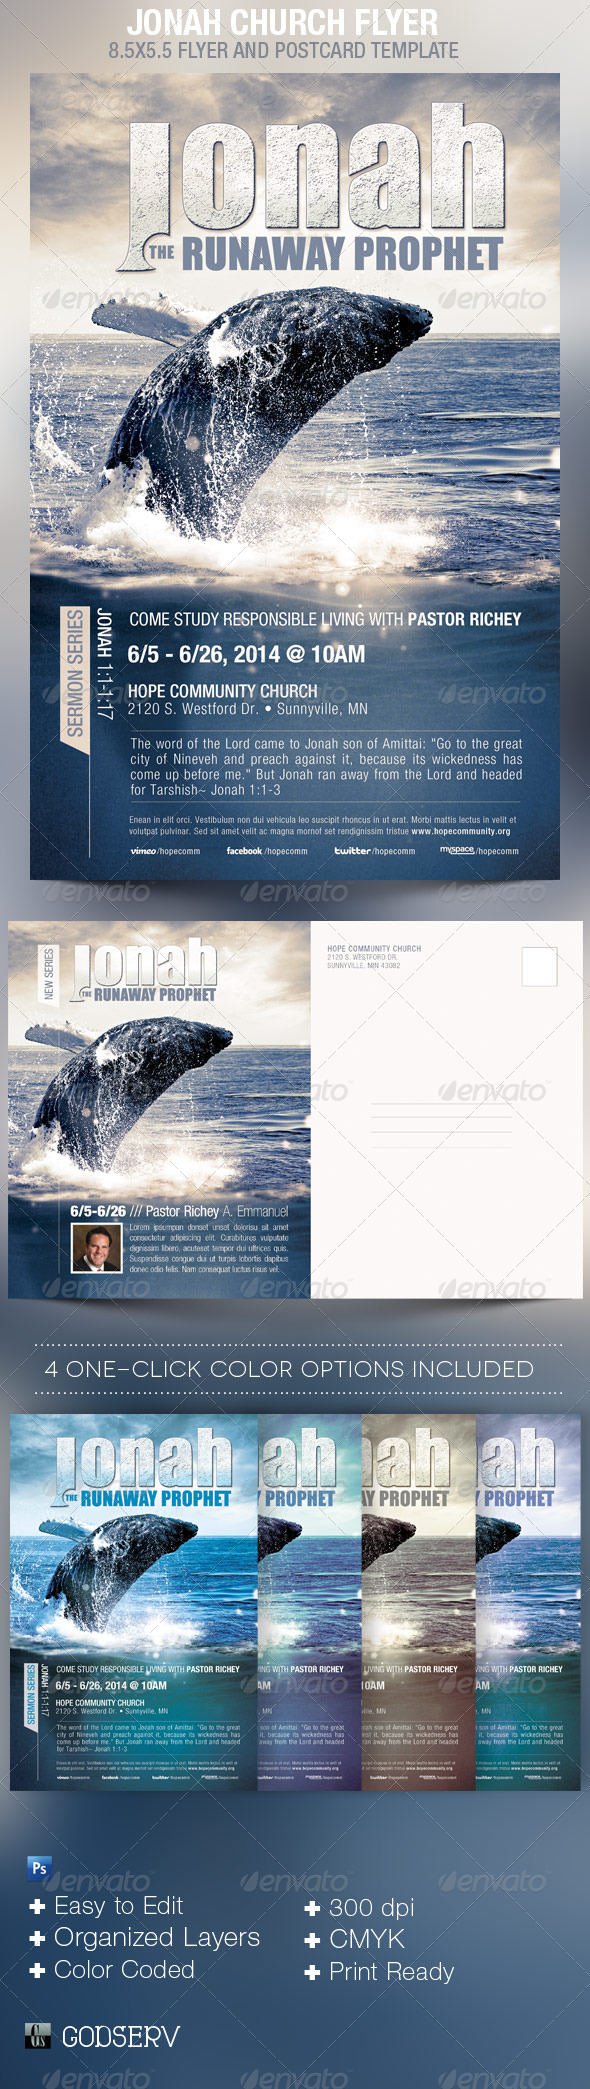 GraphicRiver Jonah Church Flyer Template 4289252